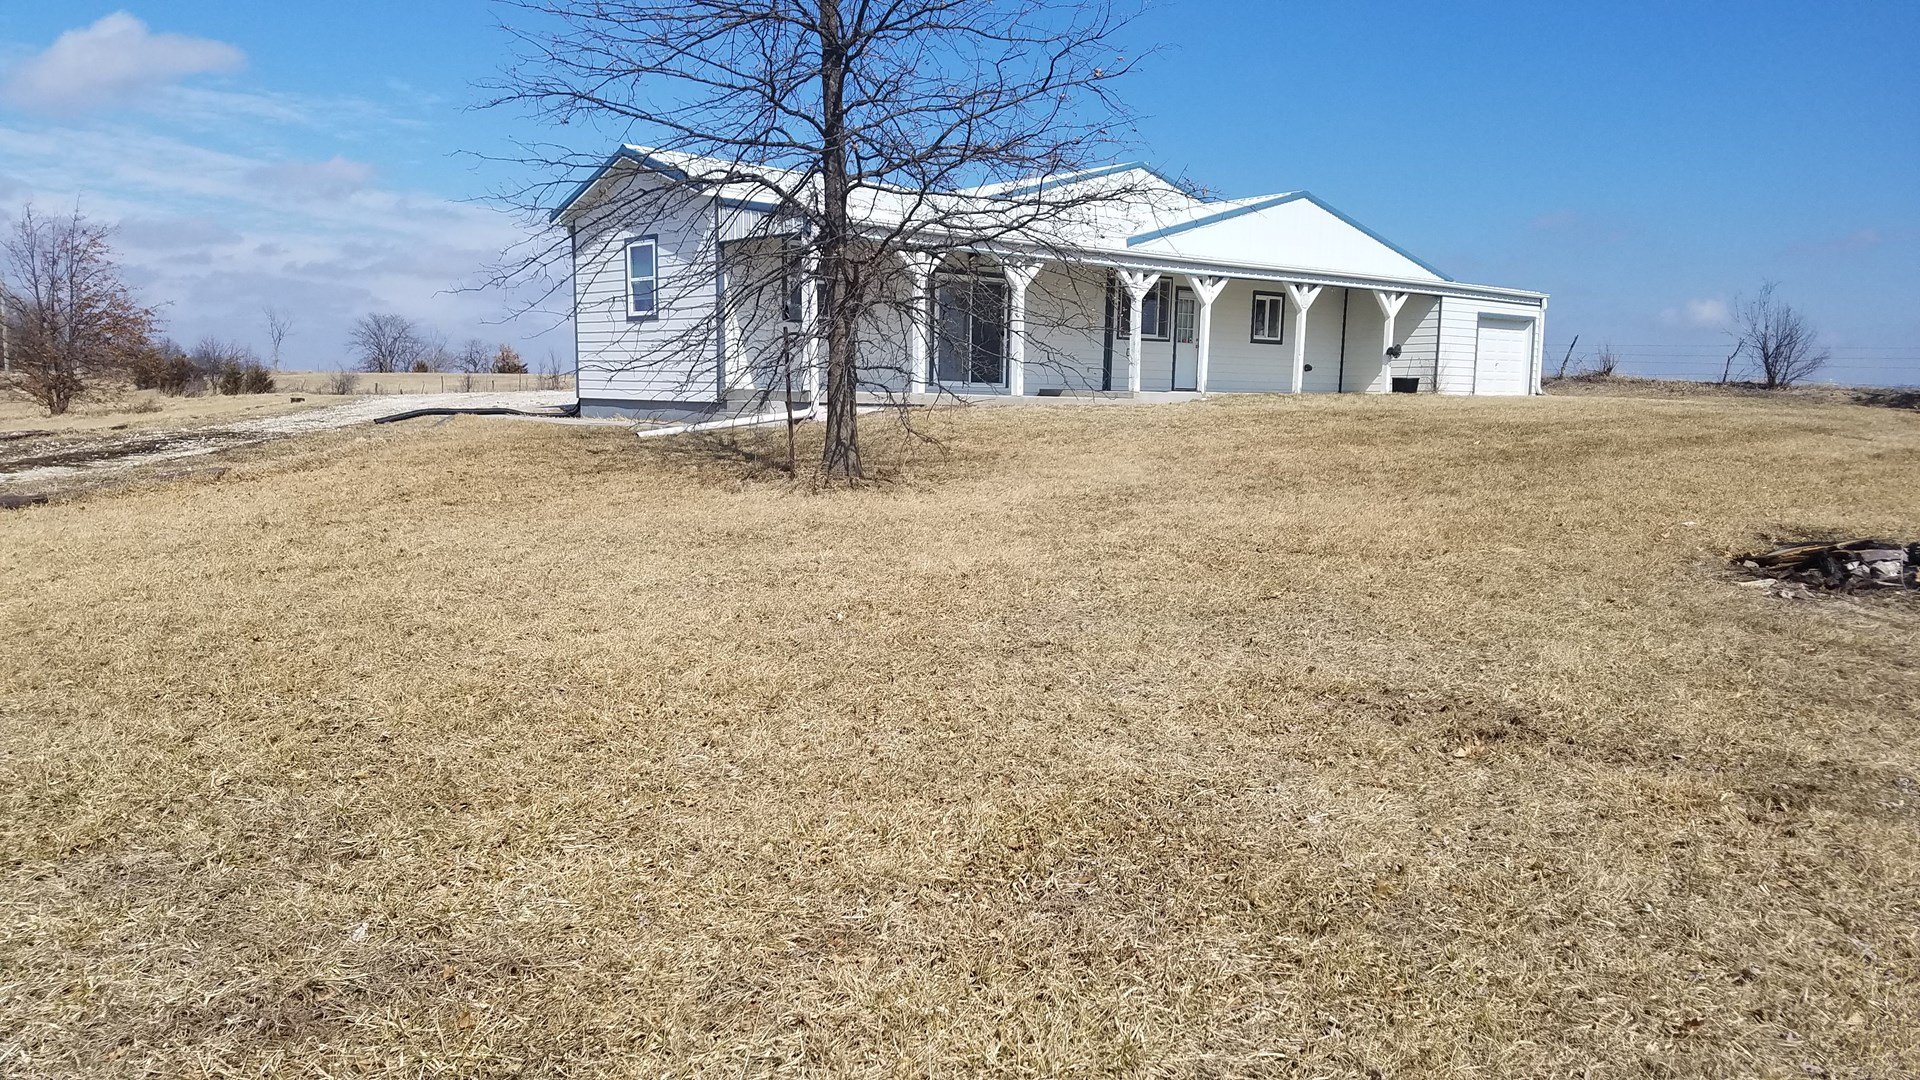 House on 4 acres for sale near Sullivan Co/Putnam Co border